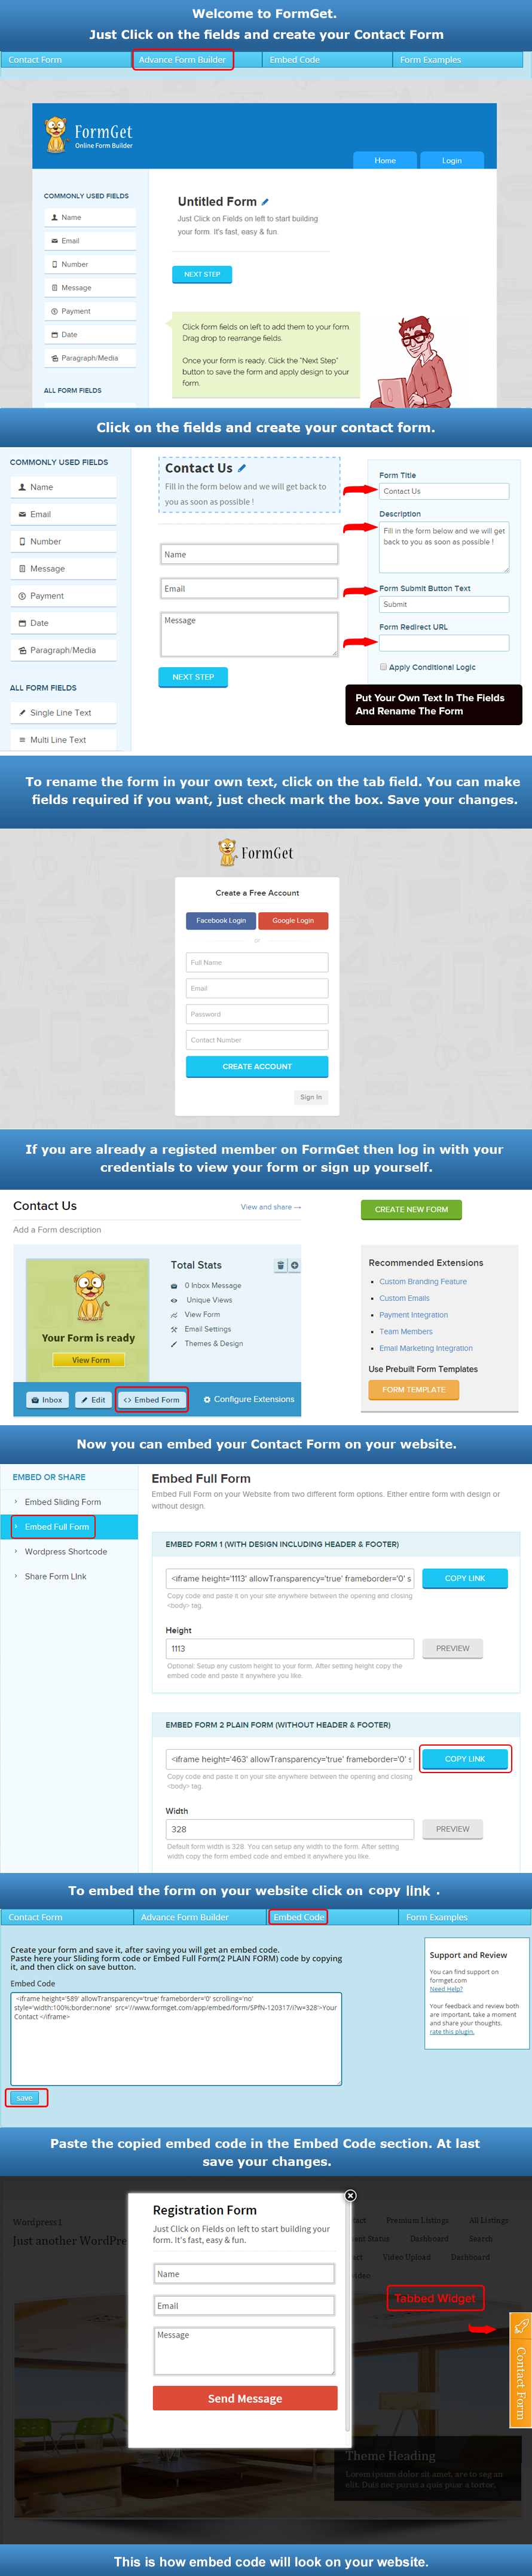 easy-contact-form-solution screenshot 1